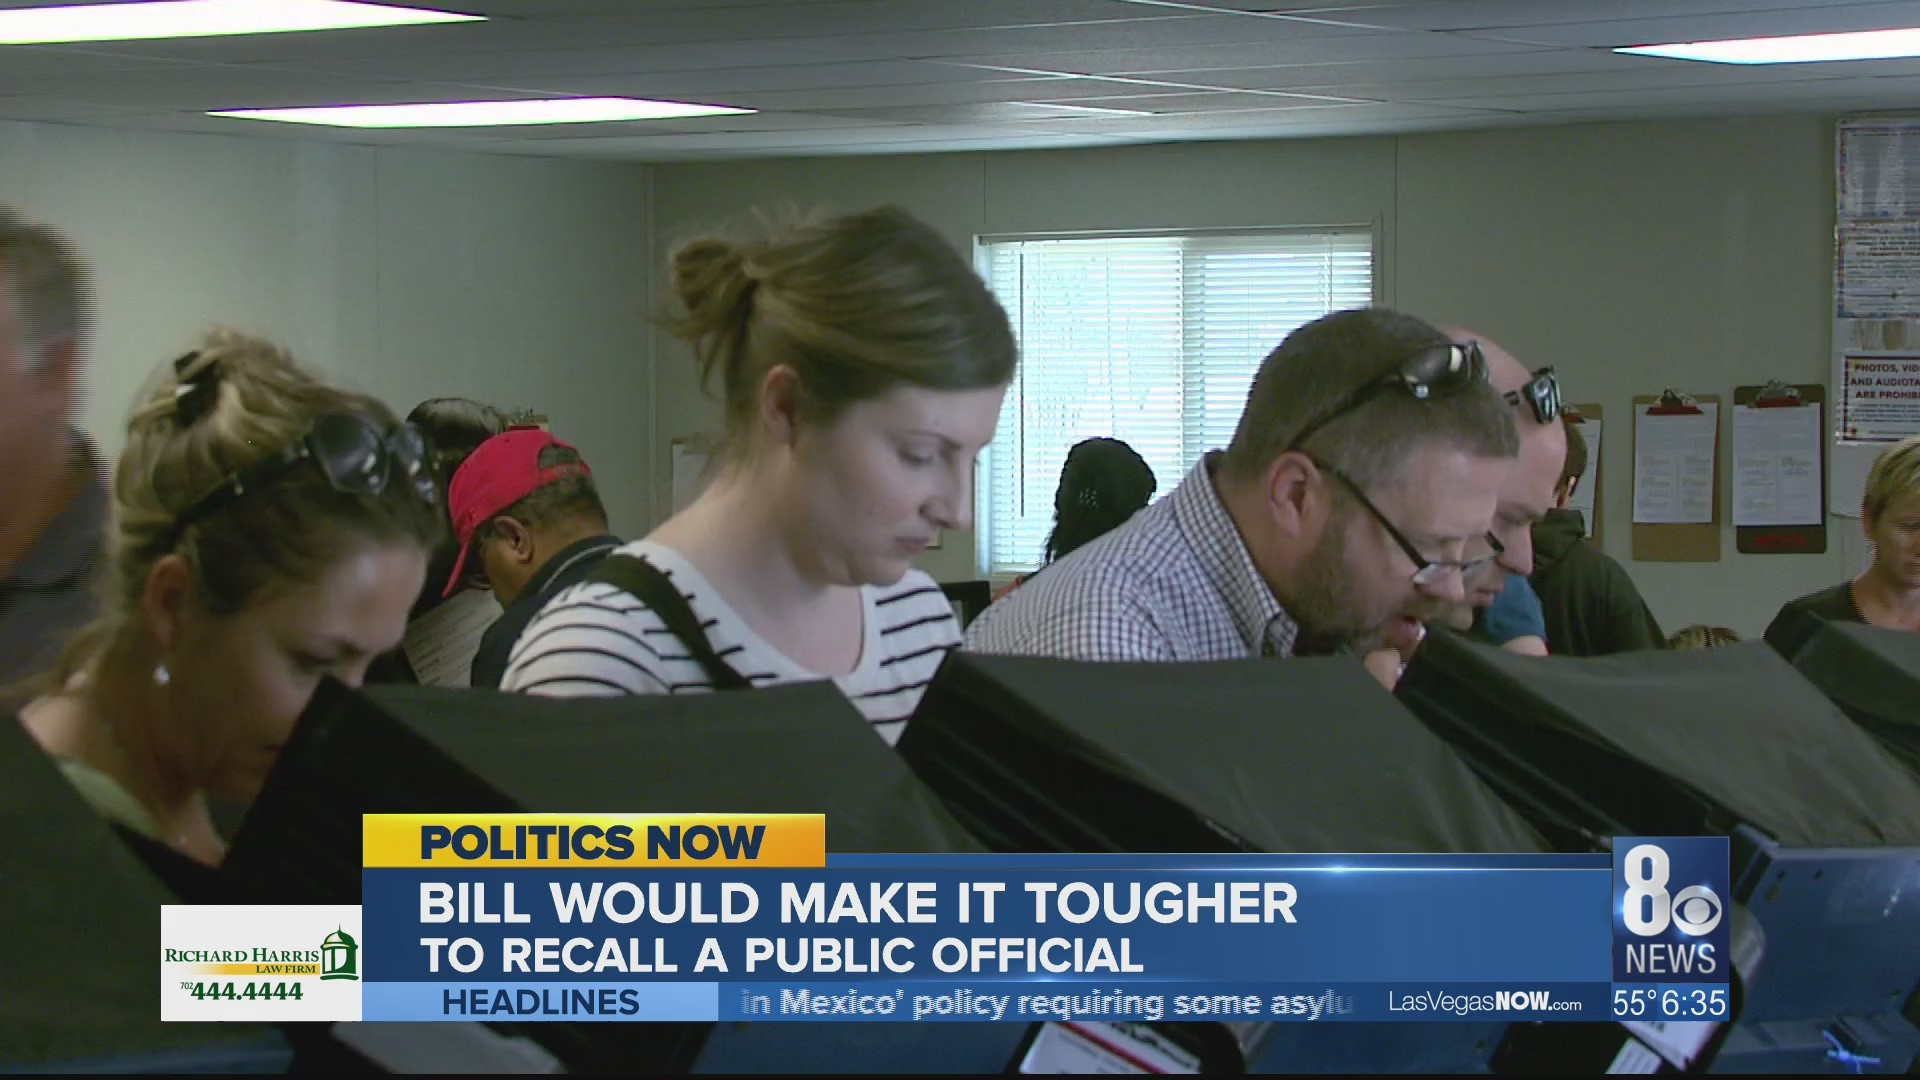 New bill would make it tough recalling public official